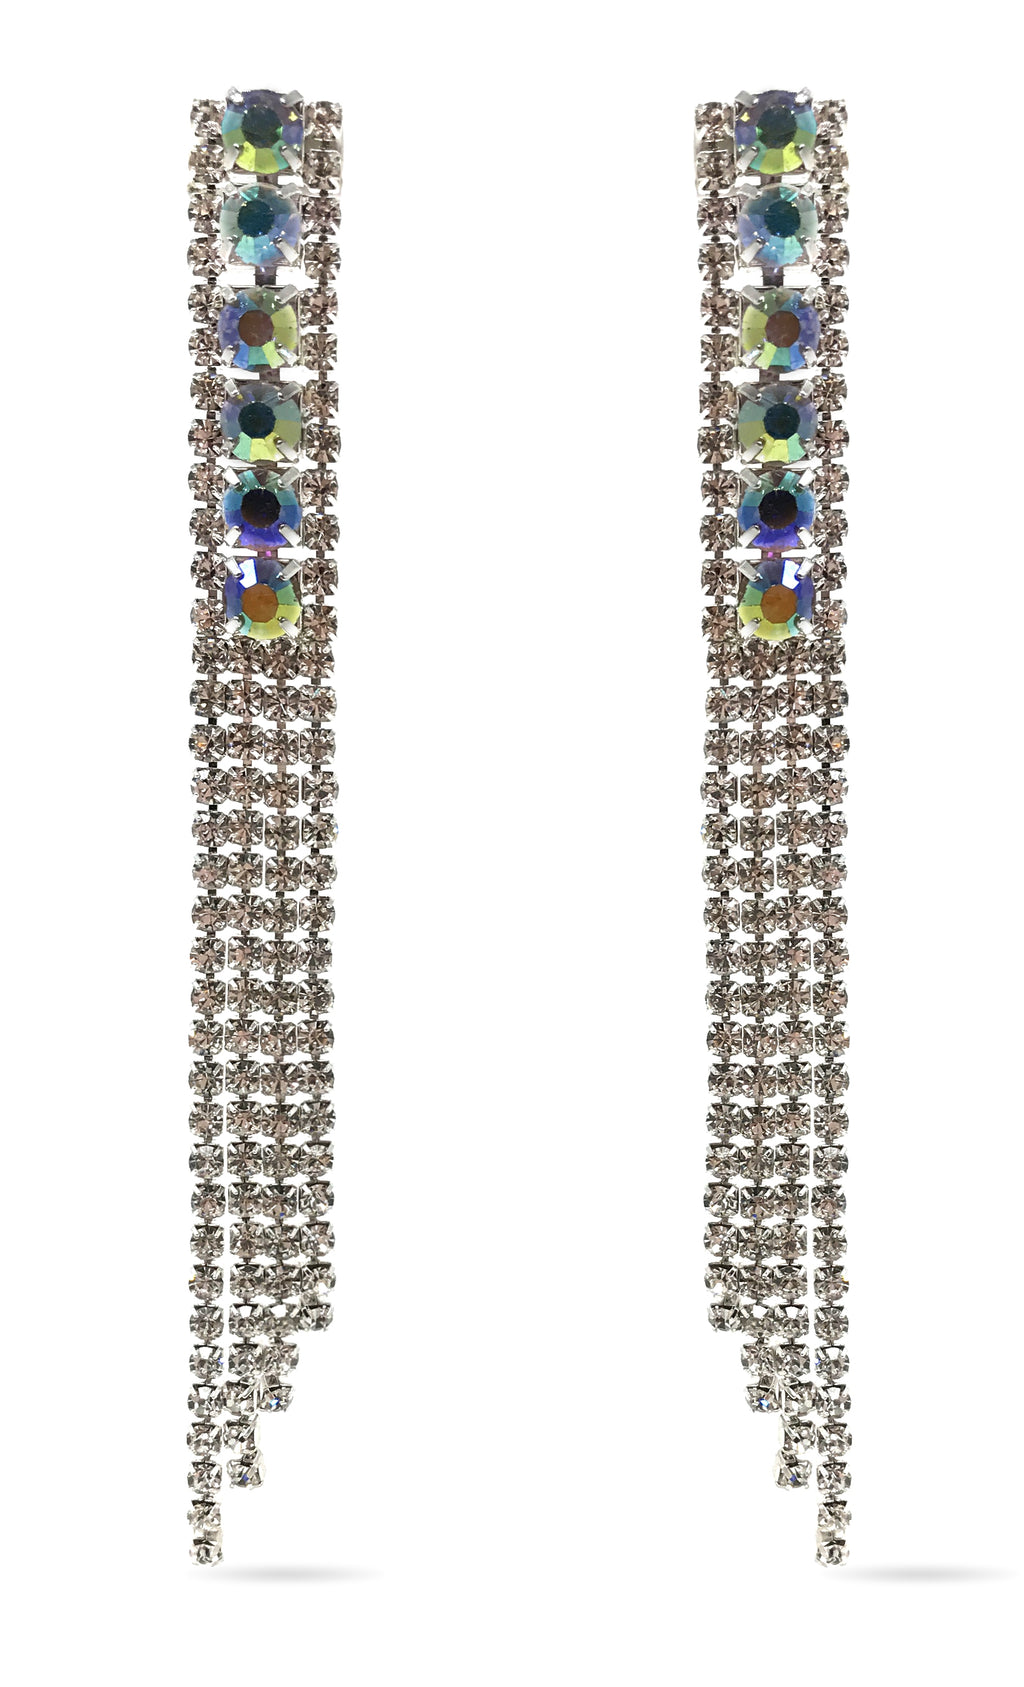 Love Conquers All Waterfall Silver Swarovski Crystal AB Rhinestone Fringe Chandelier Earrings